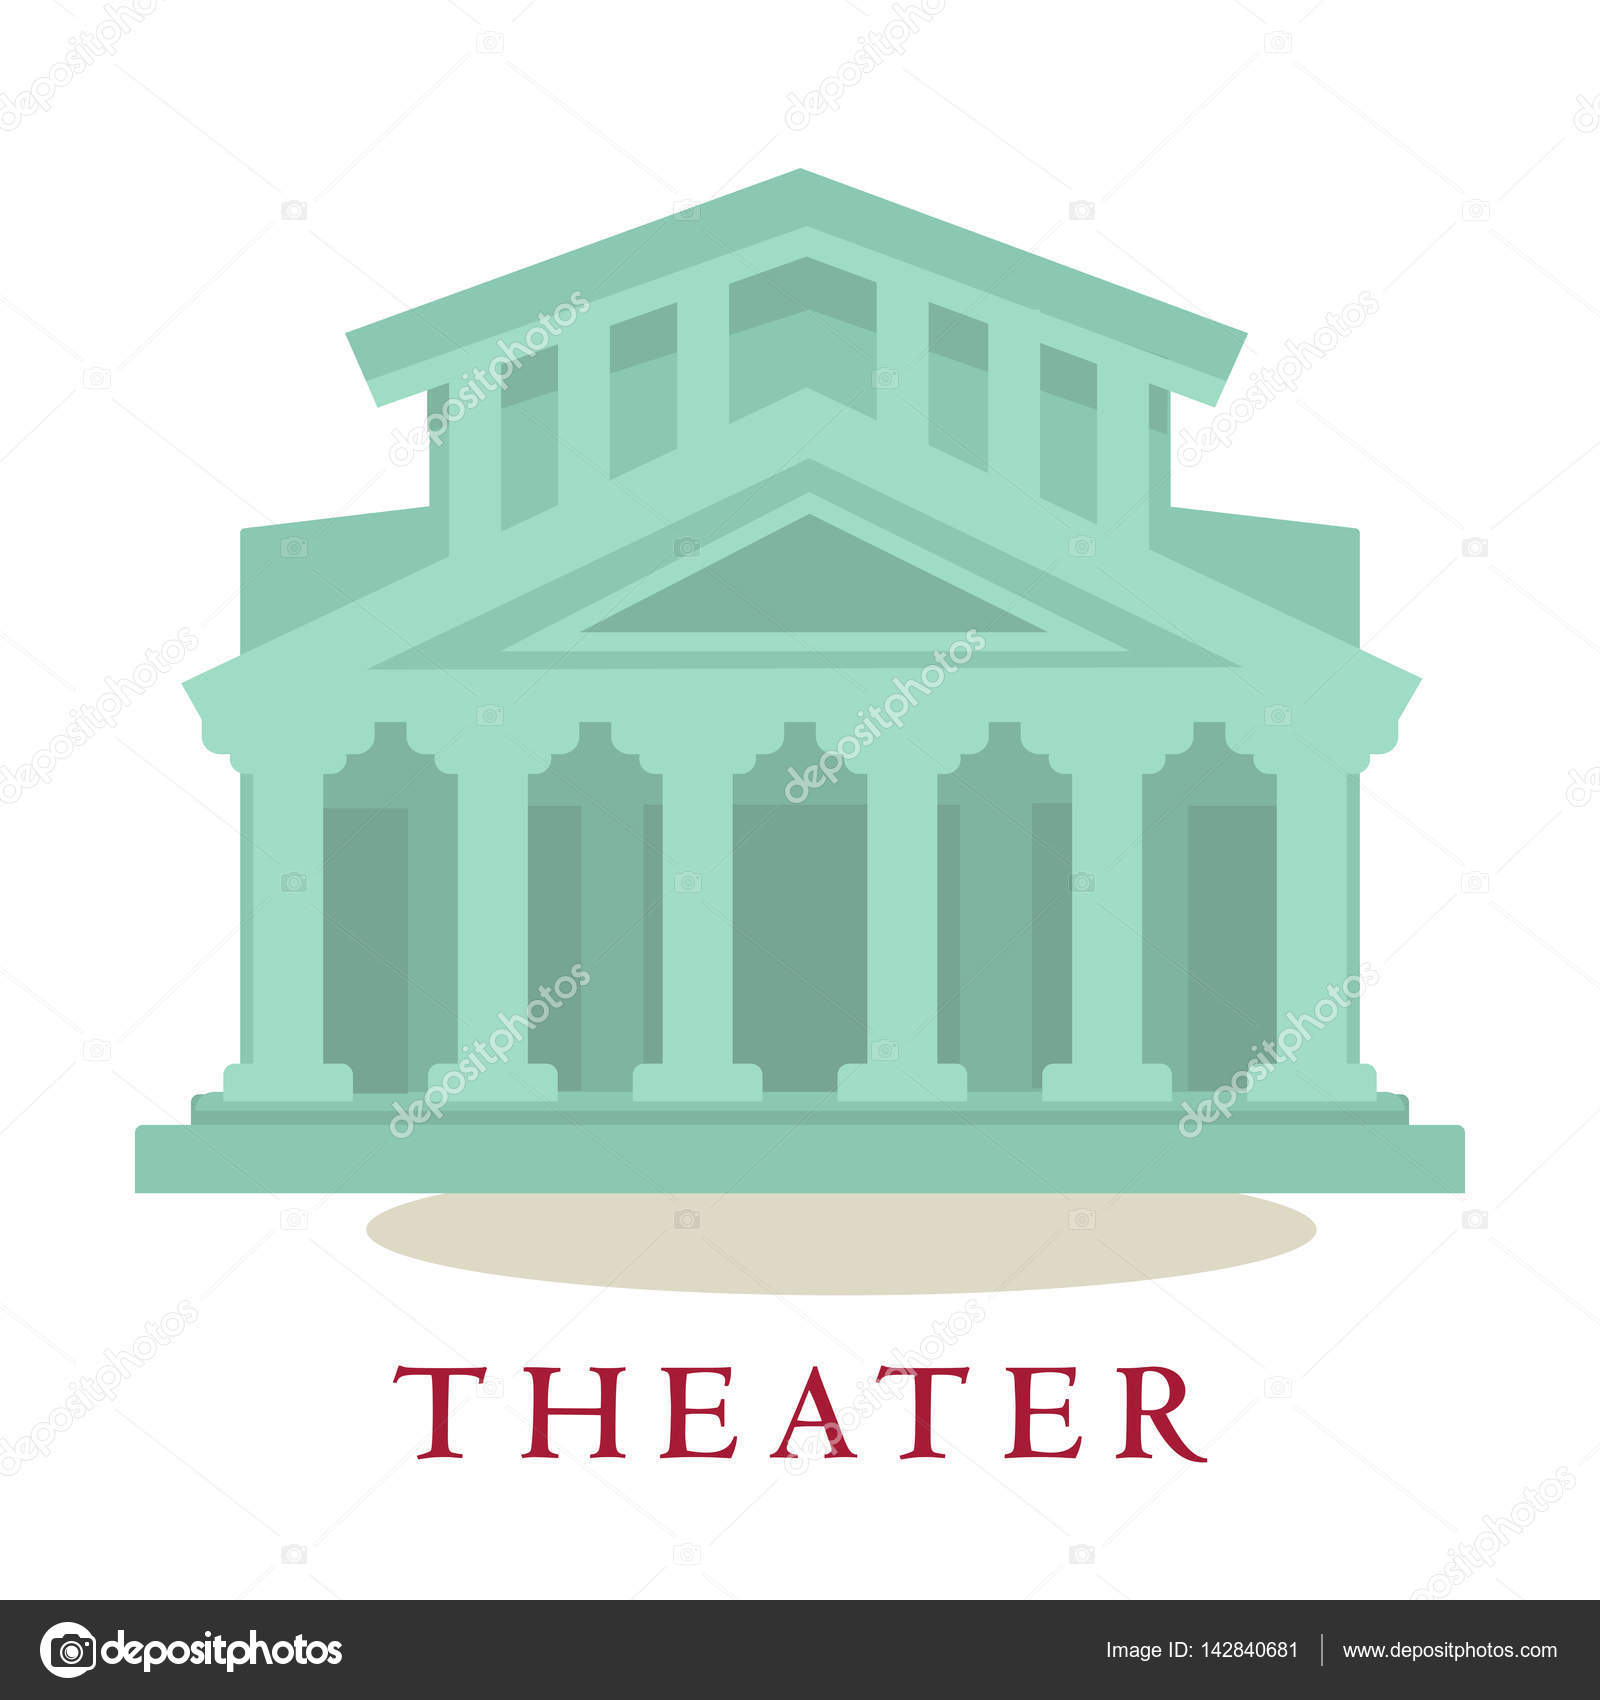 Theatre icon of building with columns stock vector theatre icon of building with columns sign symbol of modern theatrical architecture house isolated on white background vector illustration of theater buycottarizona Image collections